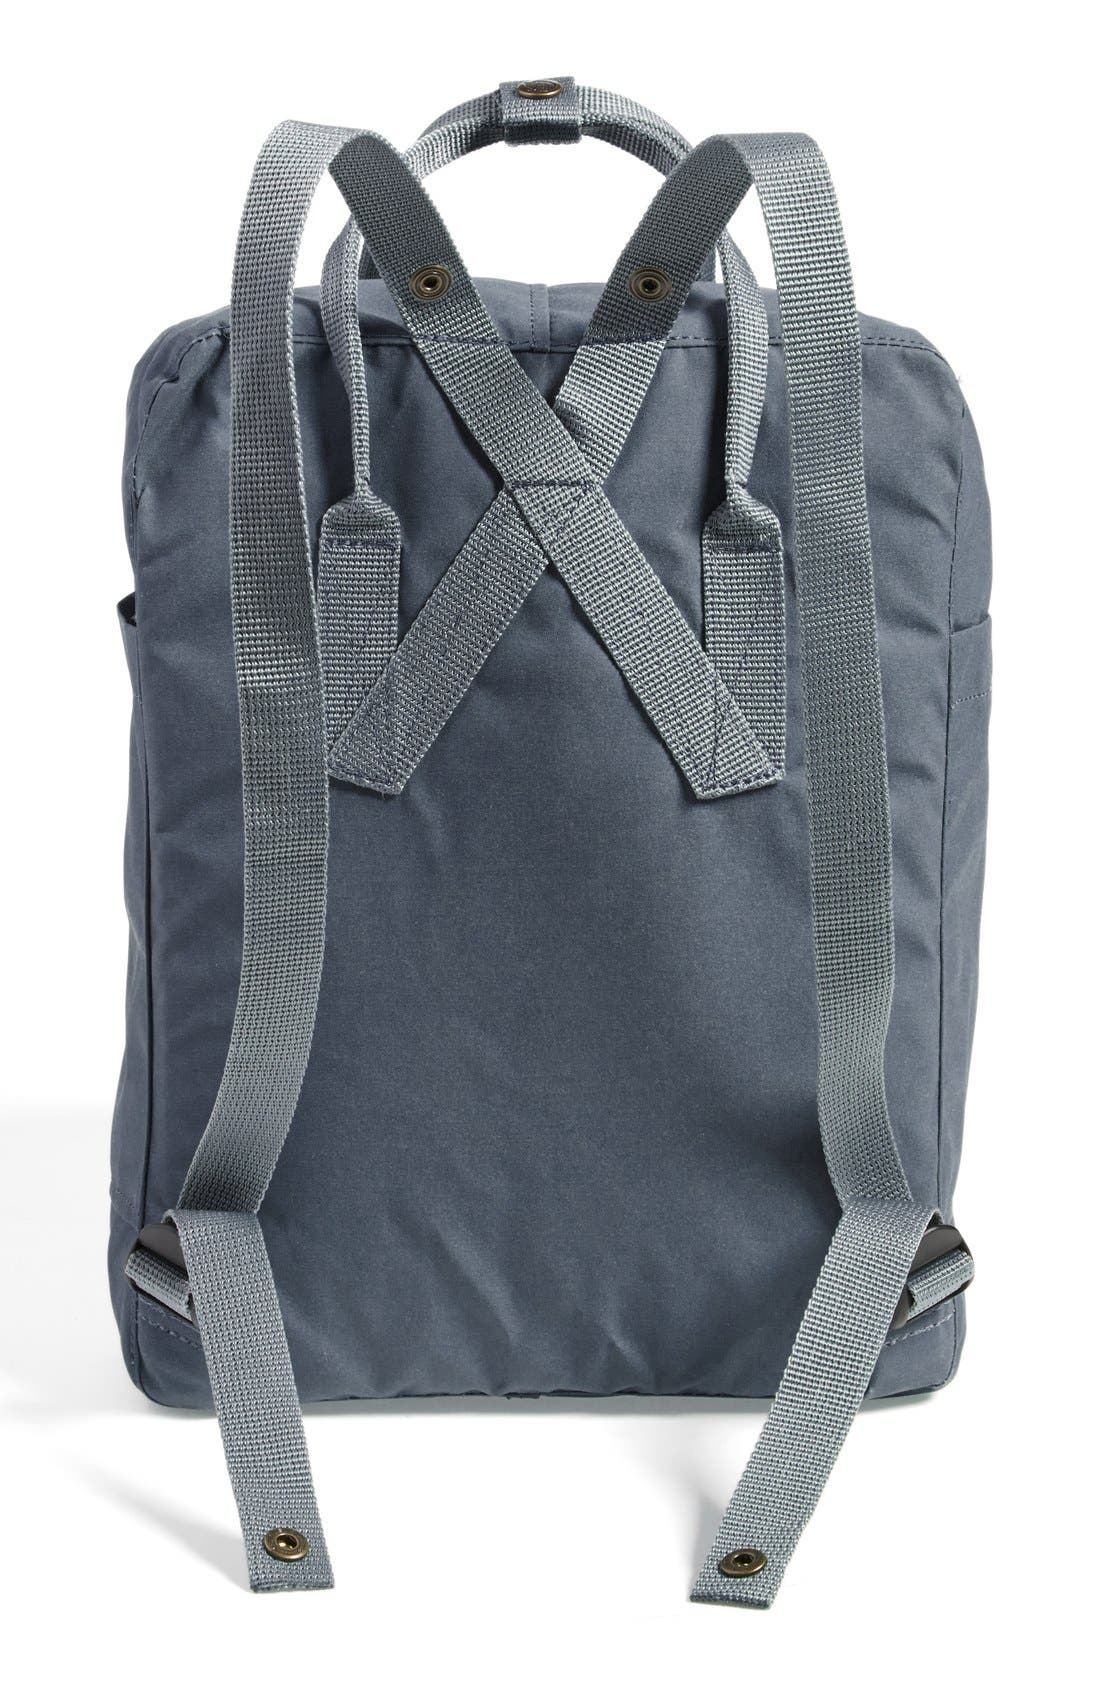 FJÄLLRÄVEN,                             Kånken Water Resistant Backpack,                             Alternate thumbnail 7, color,                             GRAPHITE